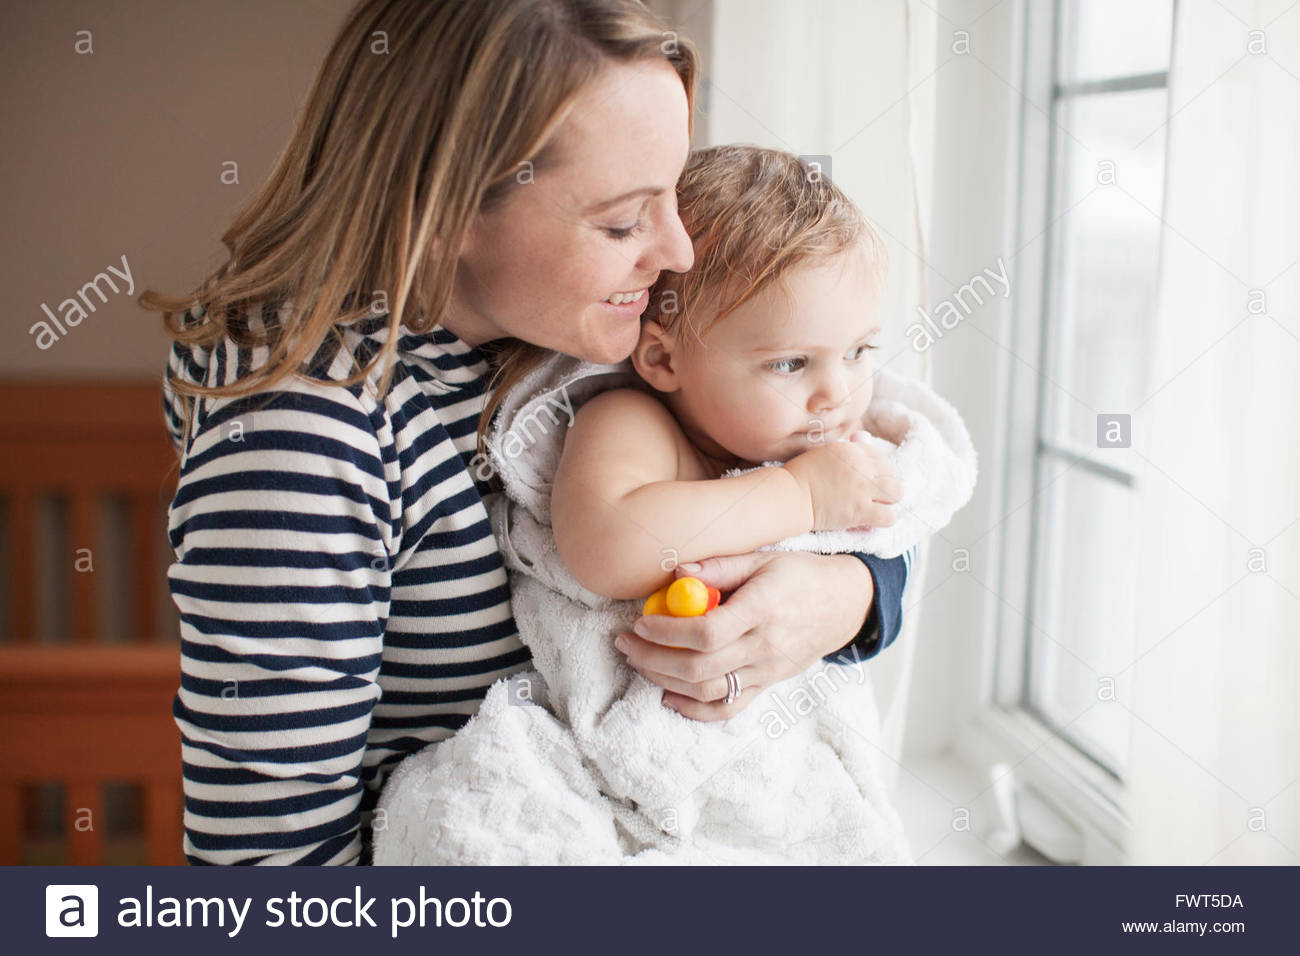 Mother snuggling baby girl after her bath - Stock Image